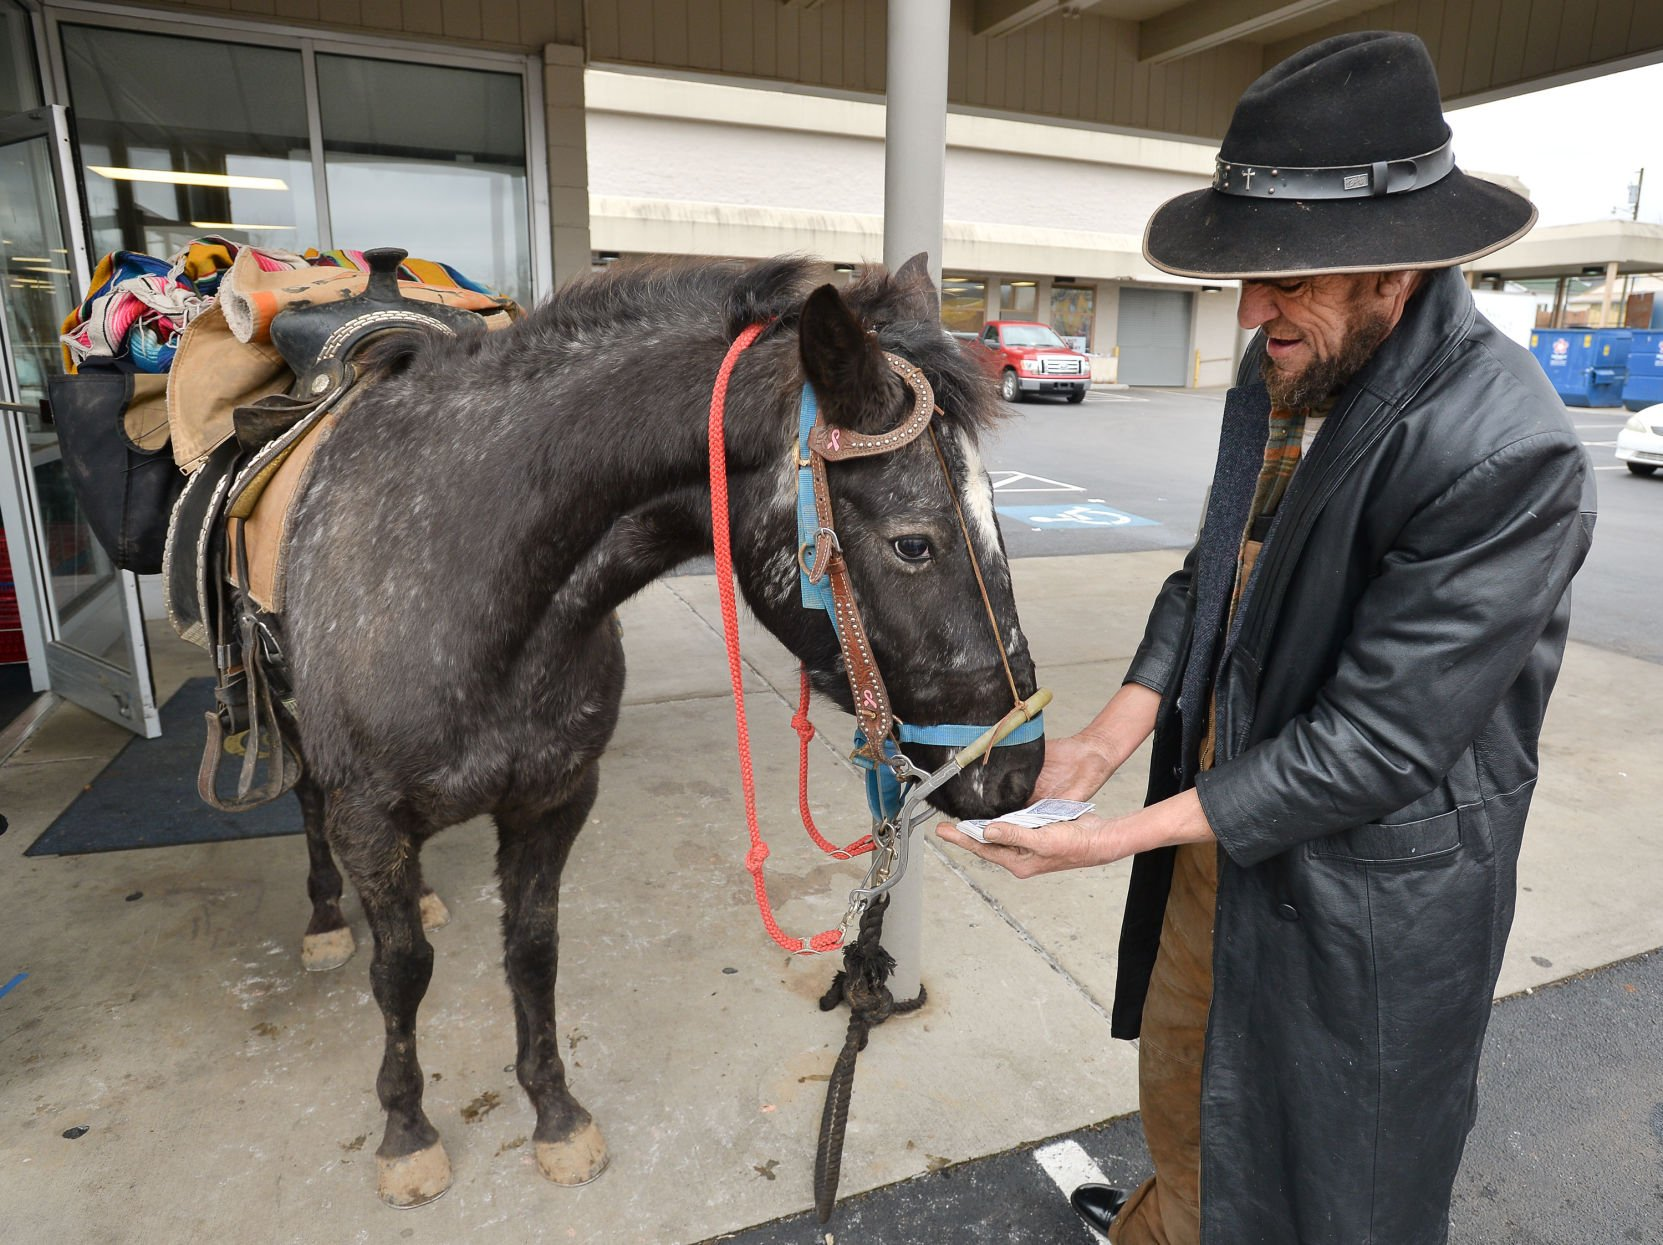 Horse Rider A Unique Sight On Bristol Streets Latest Headlines Heraldcourier Com